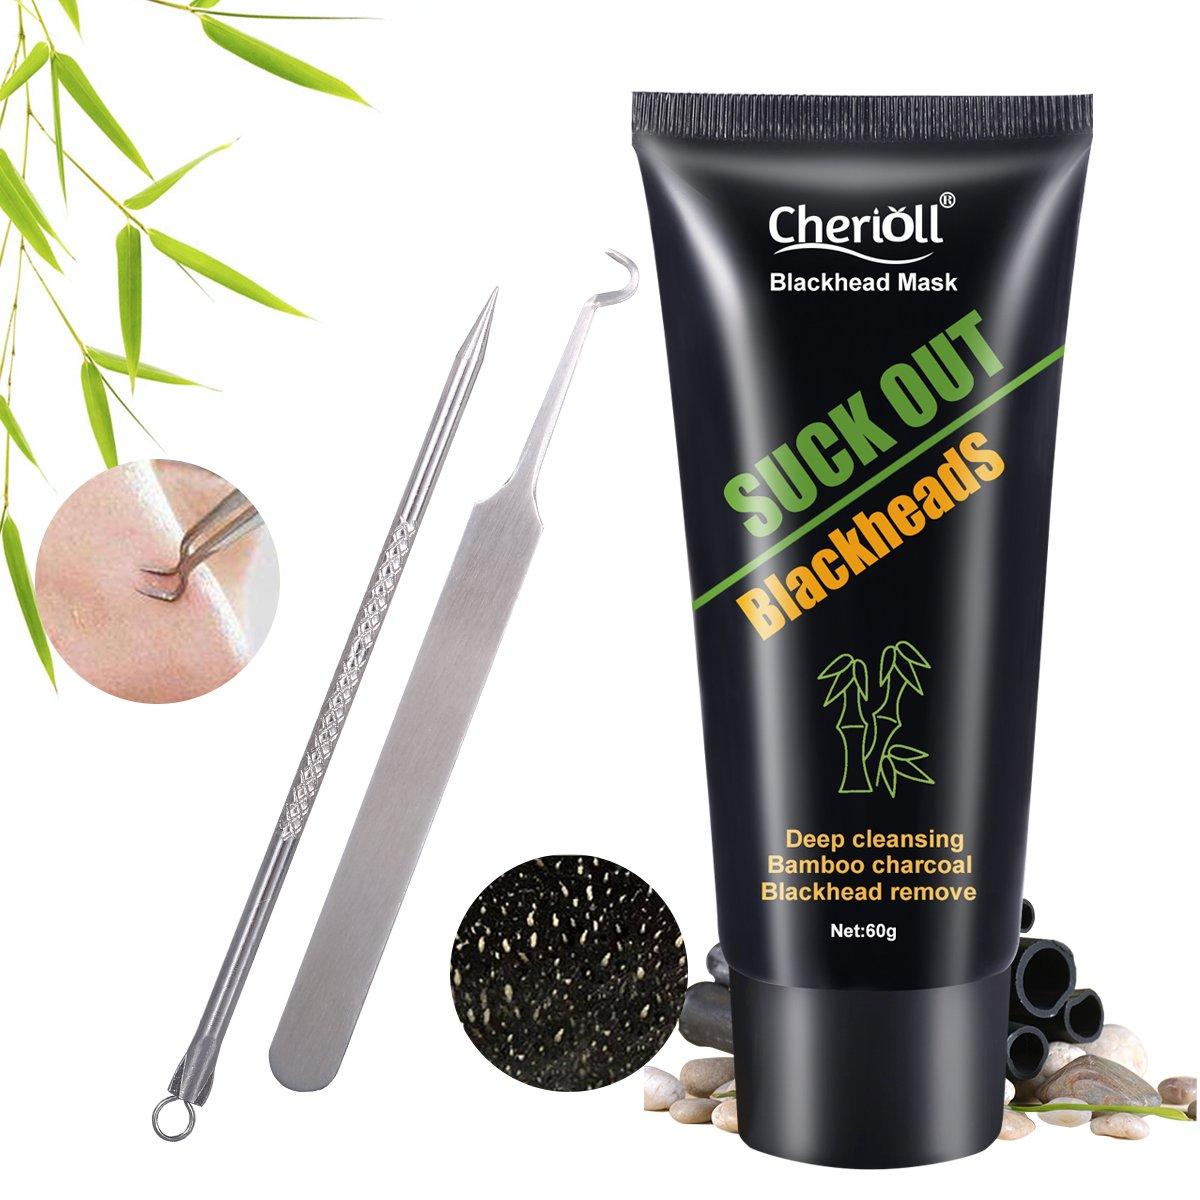 Charcoal Black Mask, Peel off Mask, Blackhead Remover Tools, Black Mud Face Mask, Farewell Strawberry Nose Toulifly